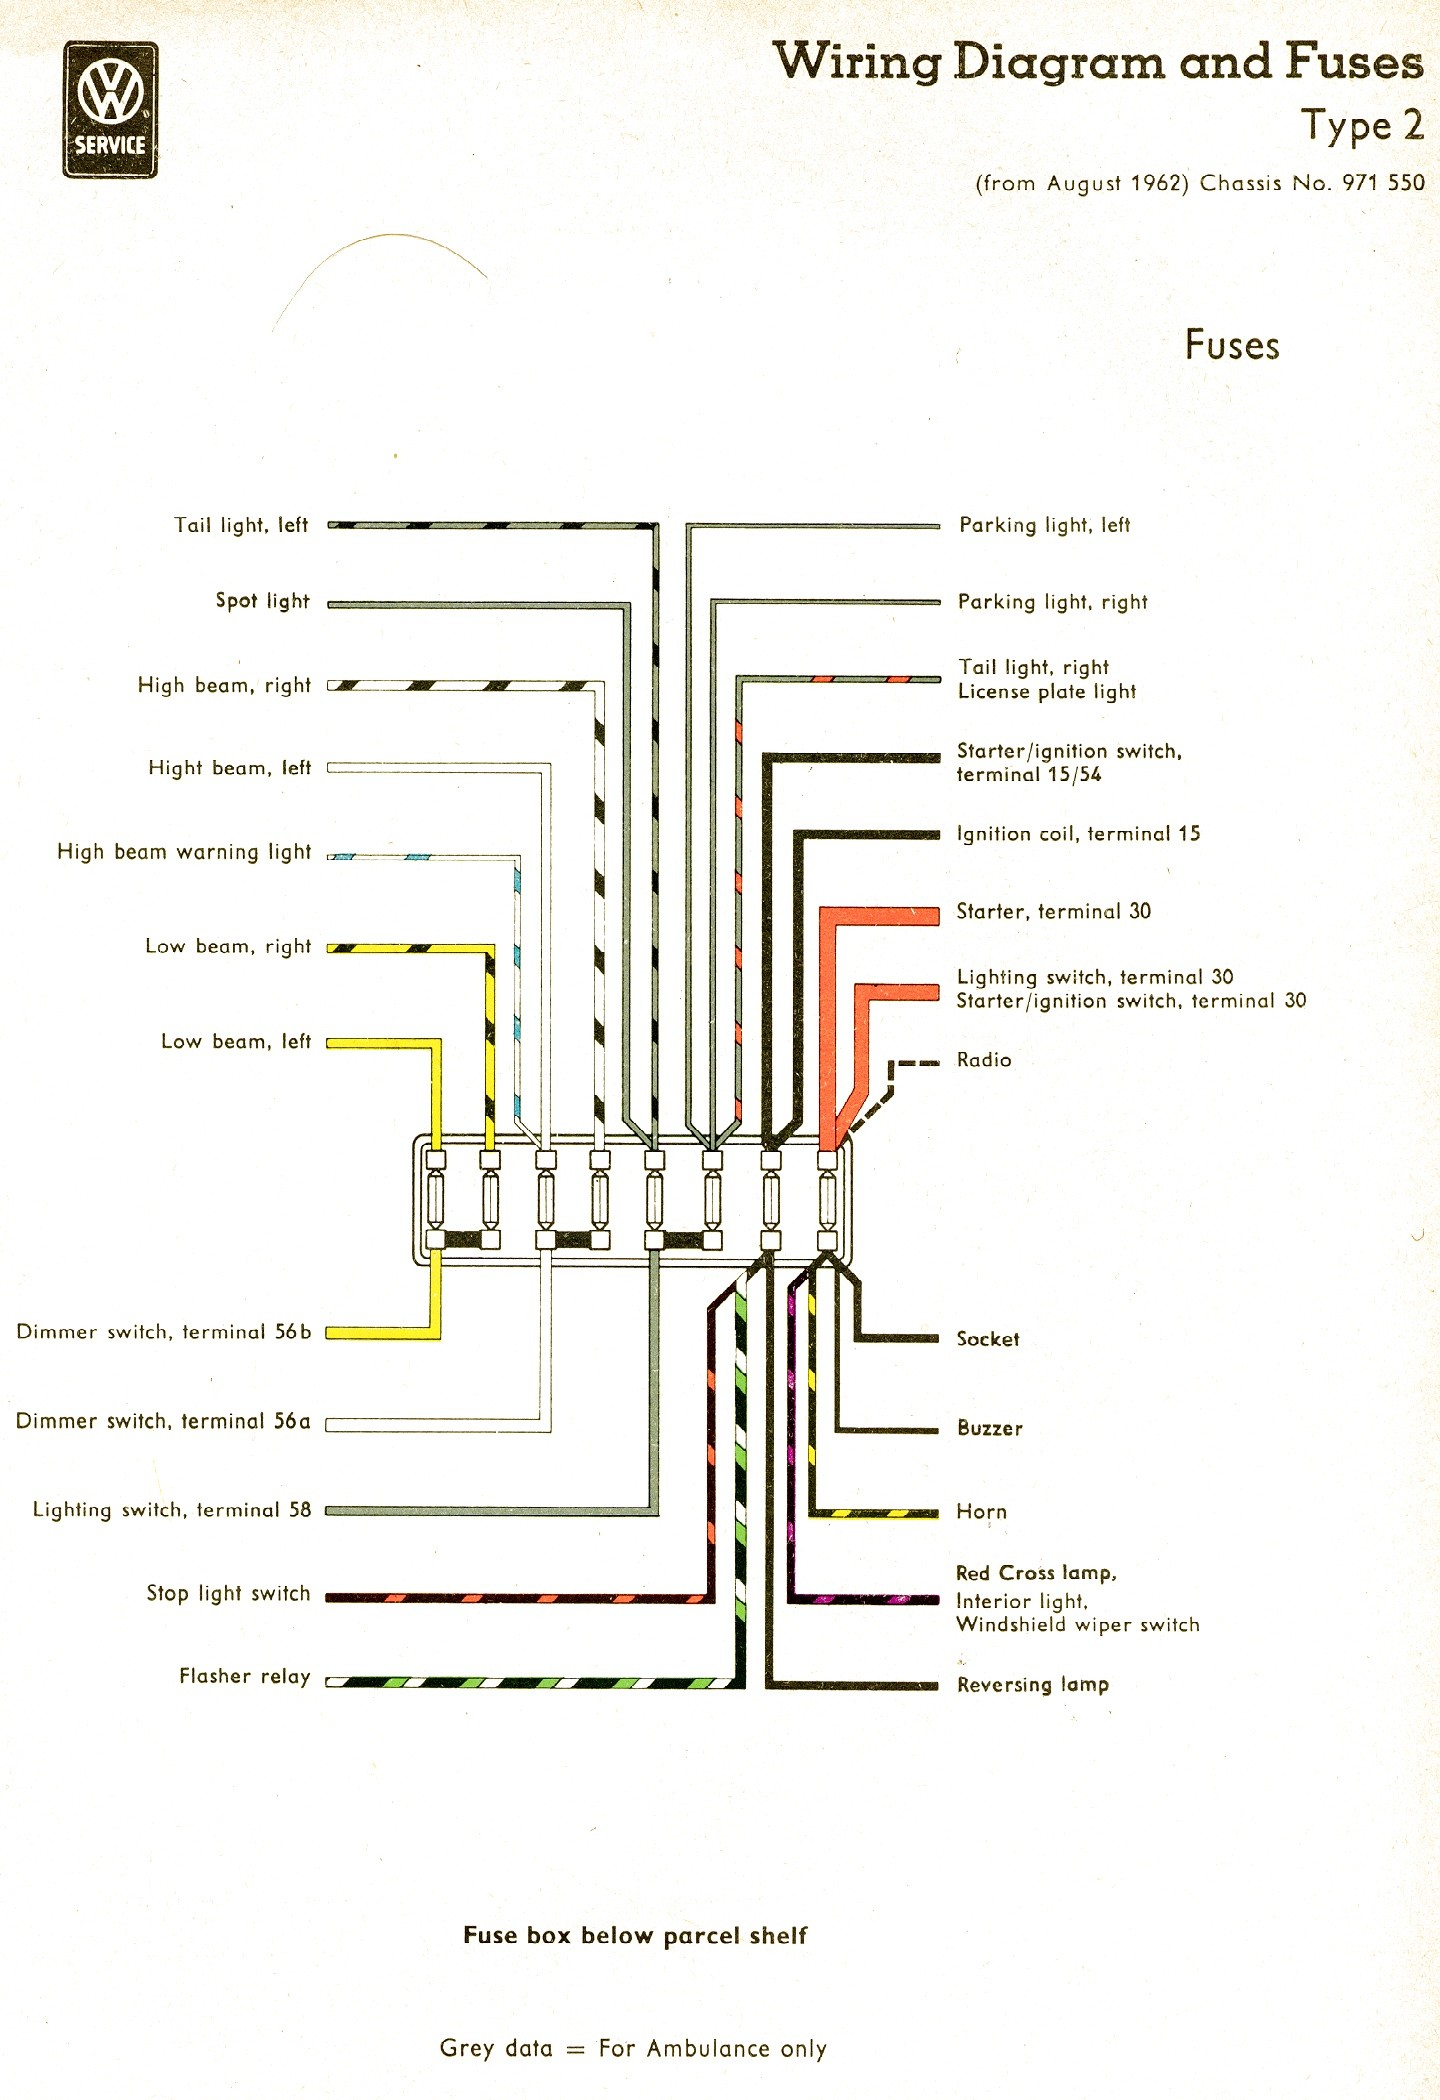 Vw golf fuse diagram diy enthusiasts wiring diagrams